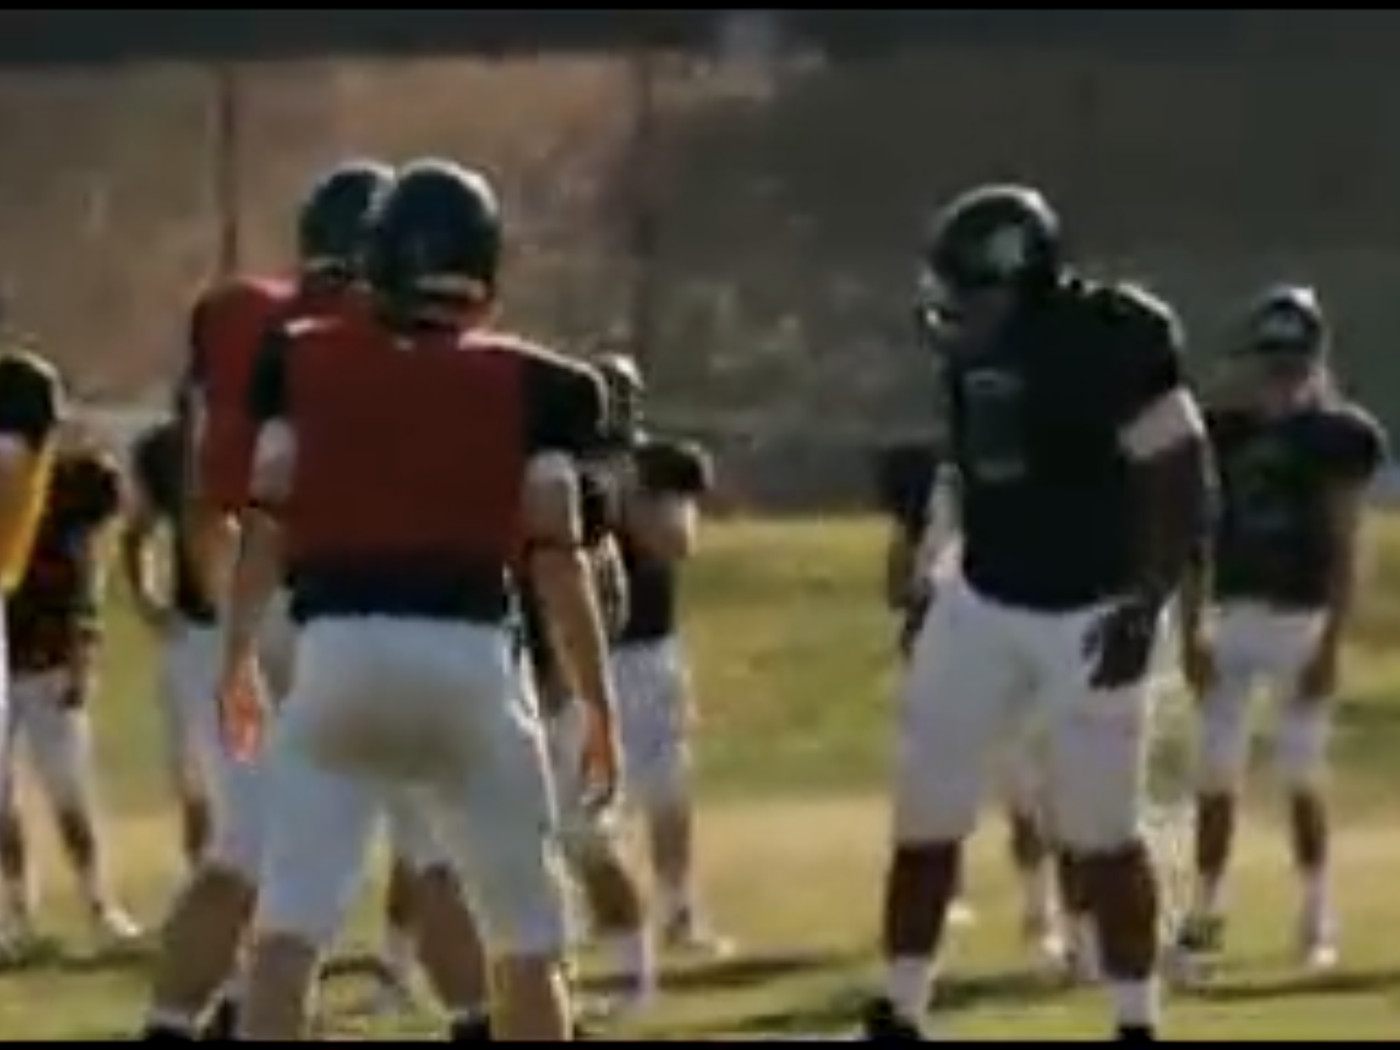 dodgers in movies: kyle farmer recalls cameo in 'the blind side